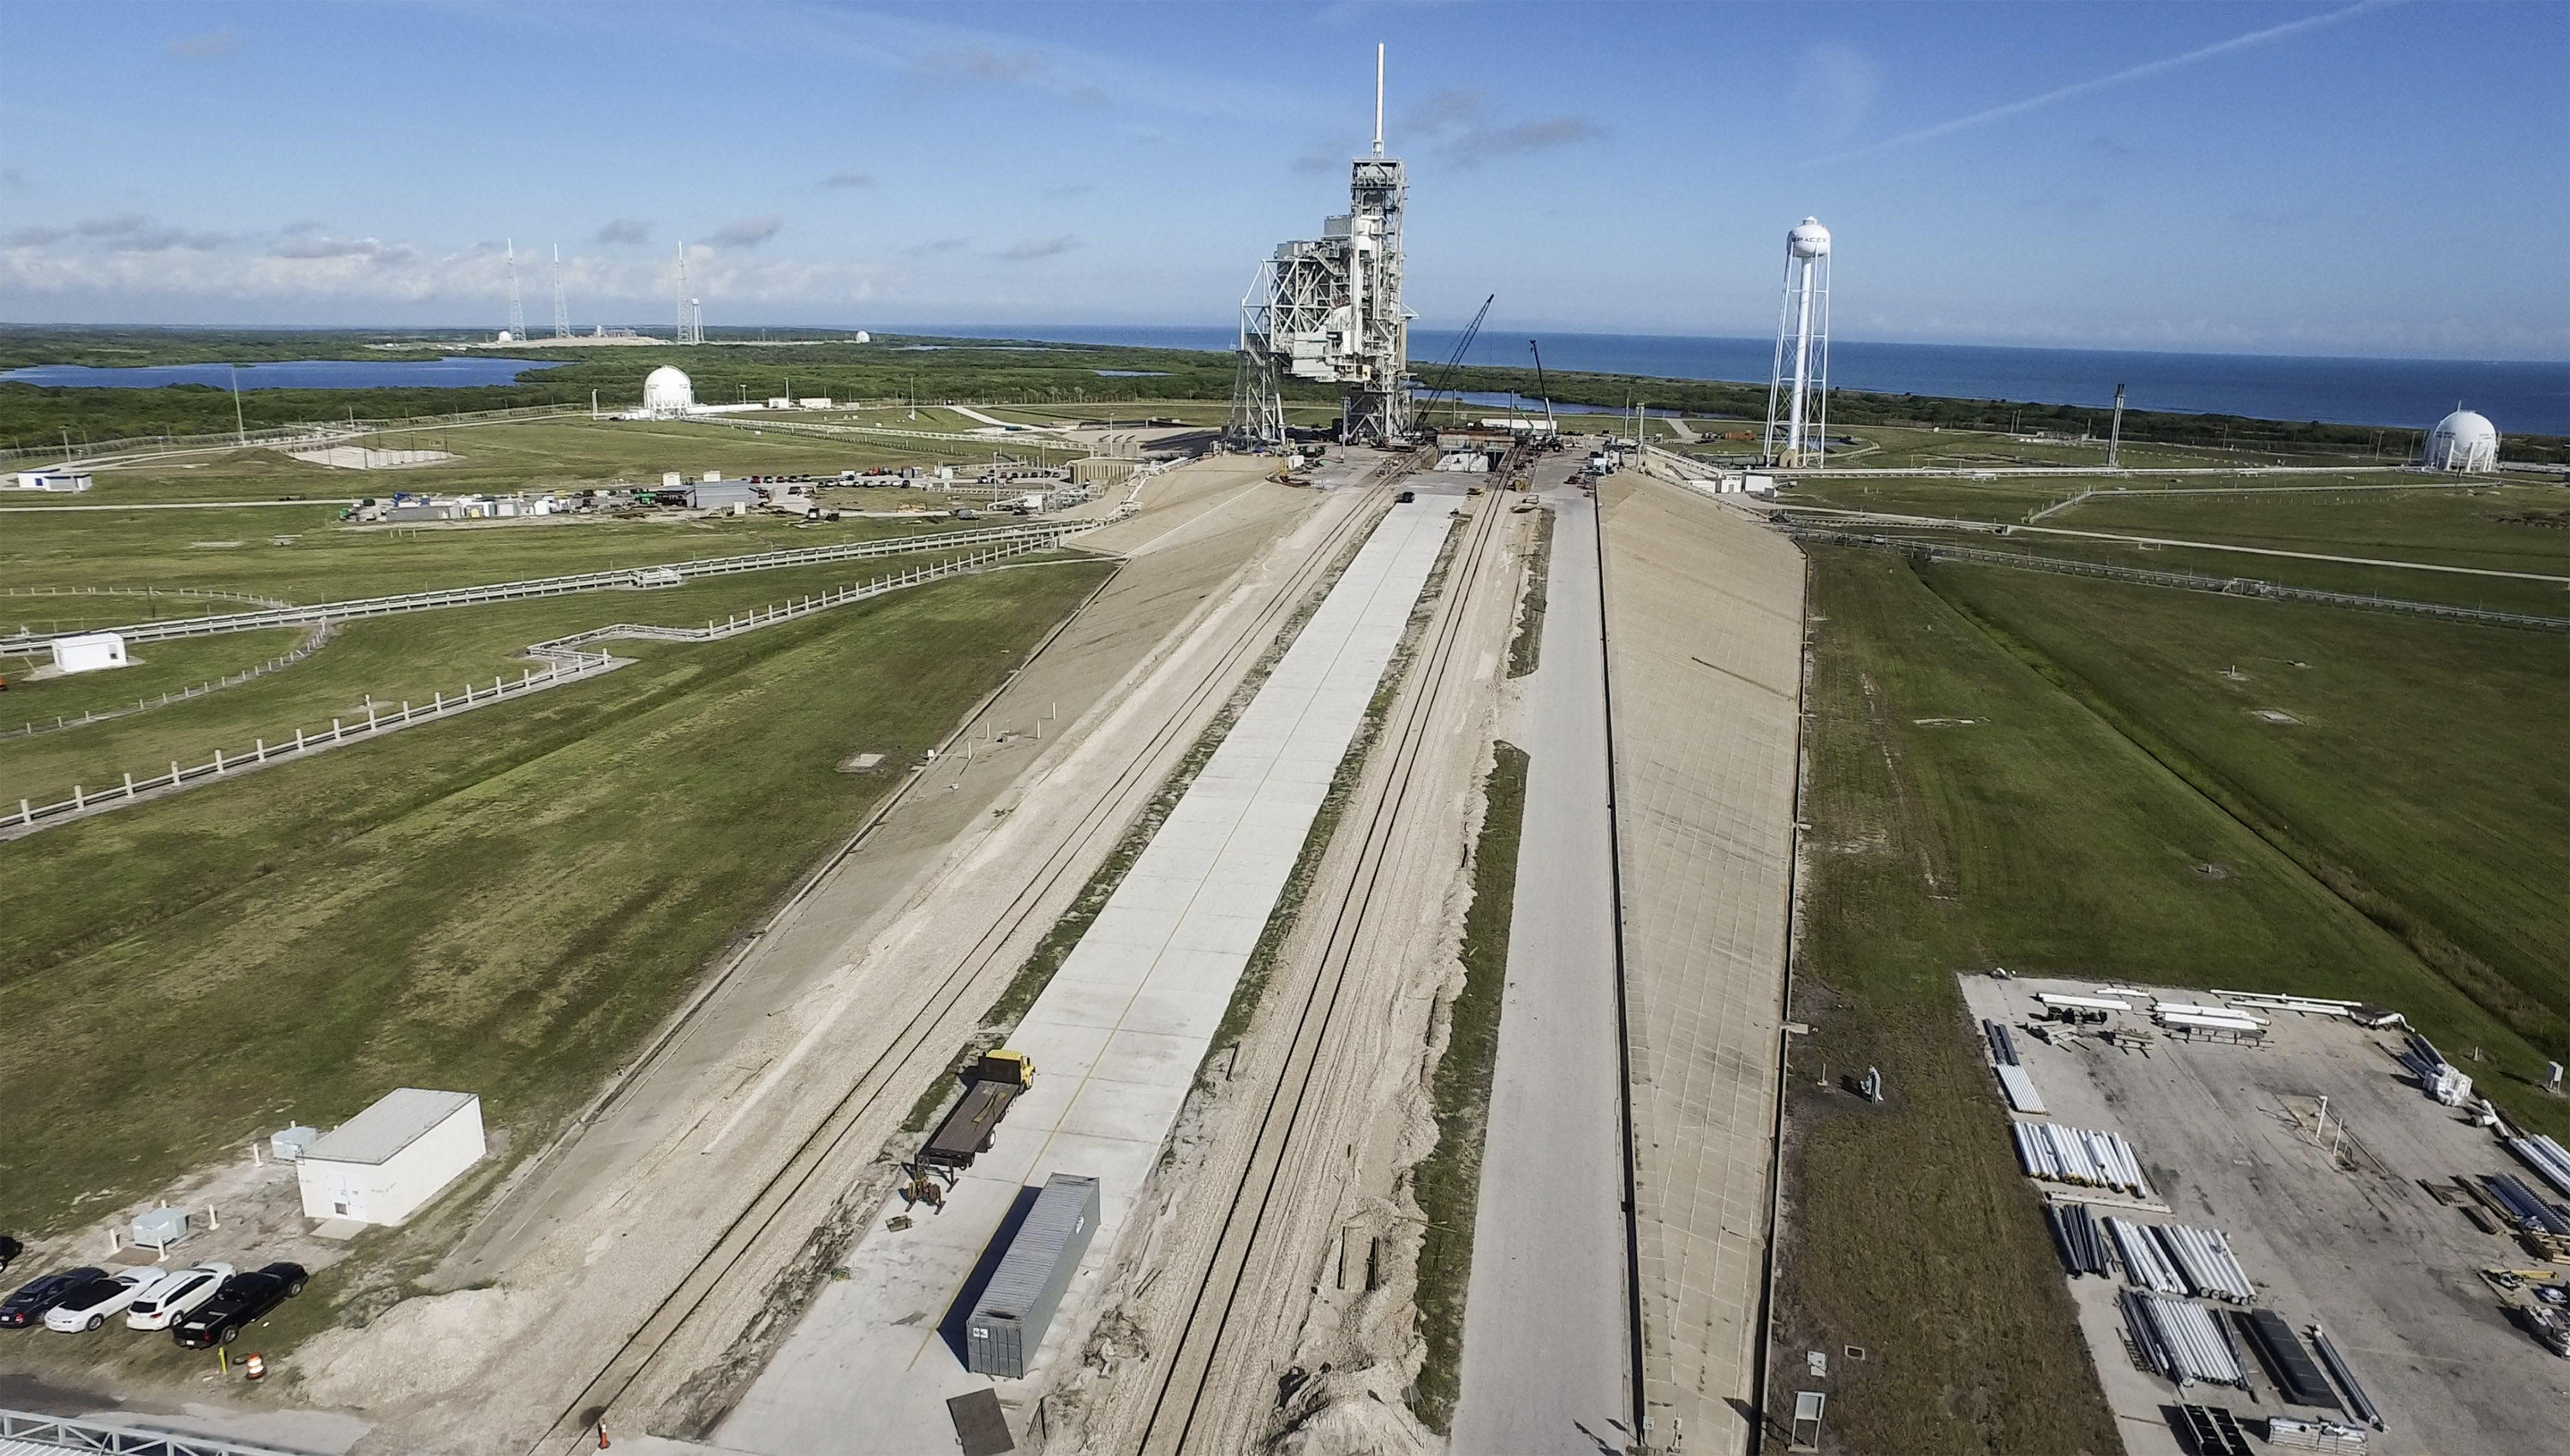 spacex launch pad 39a - photo #13